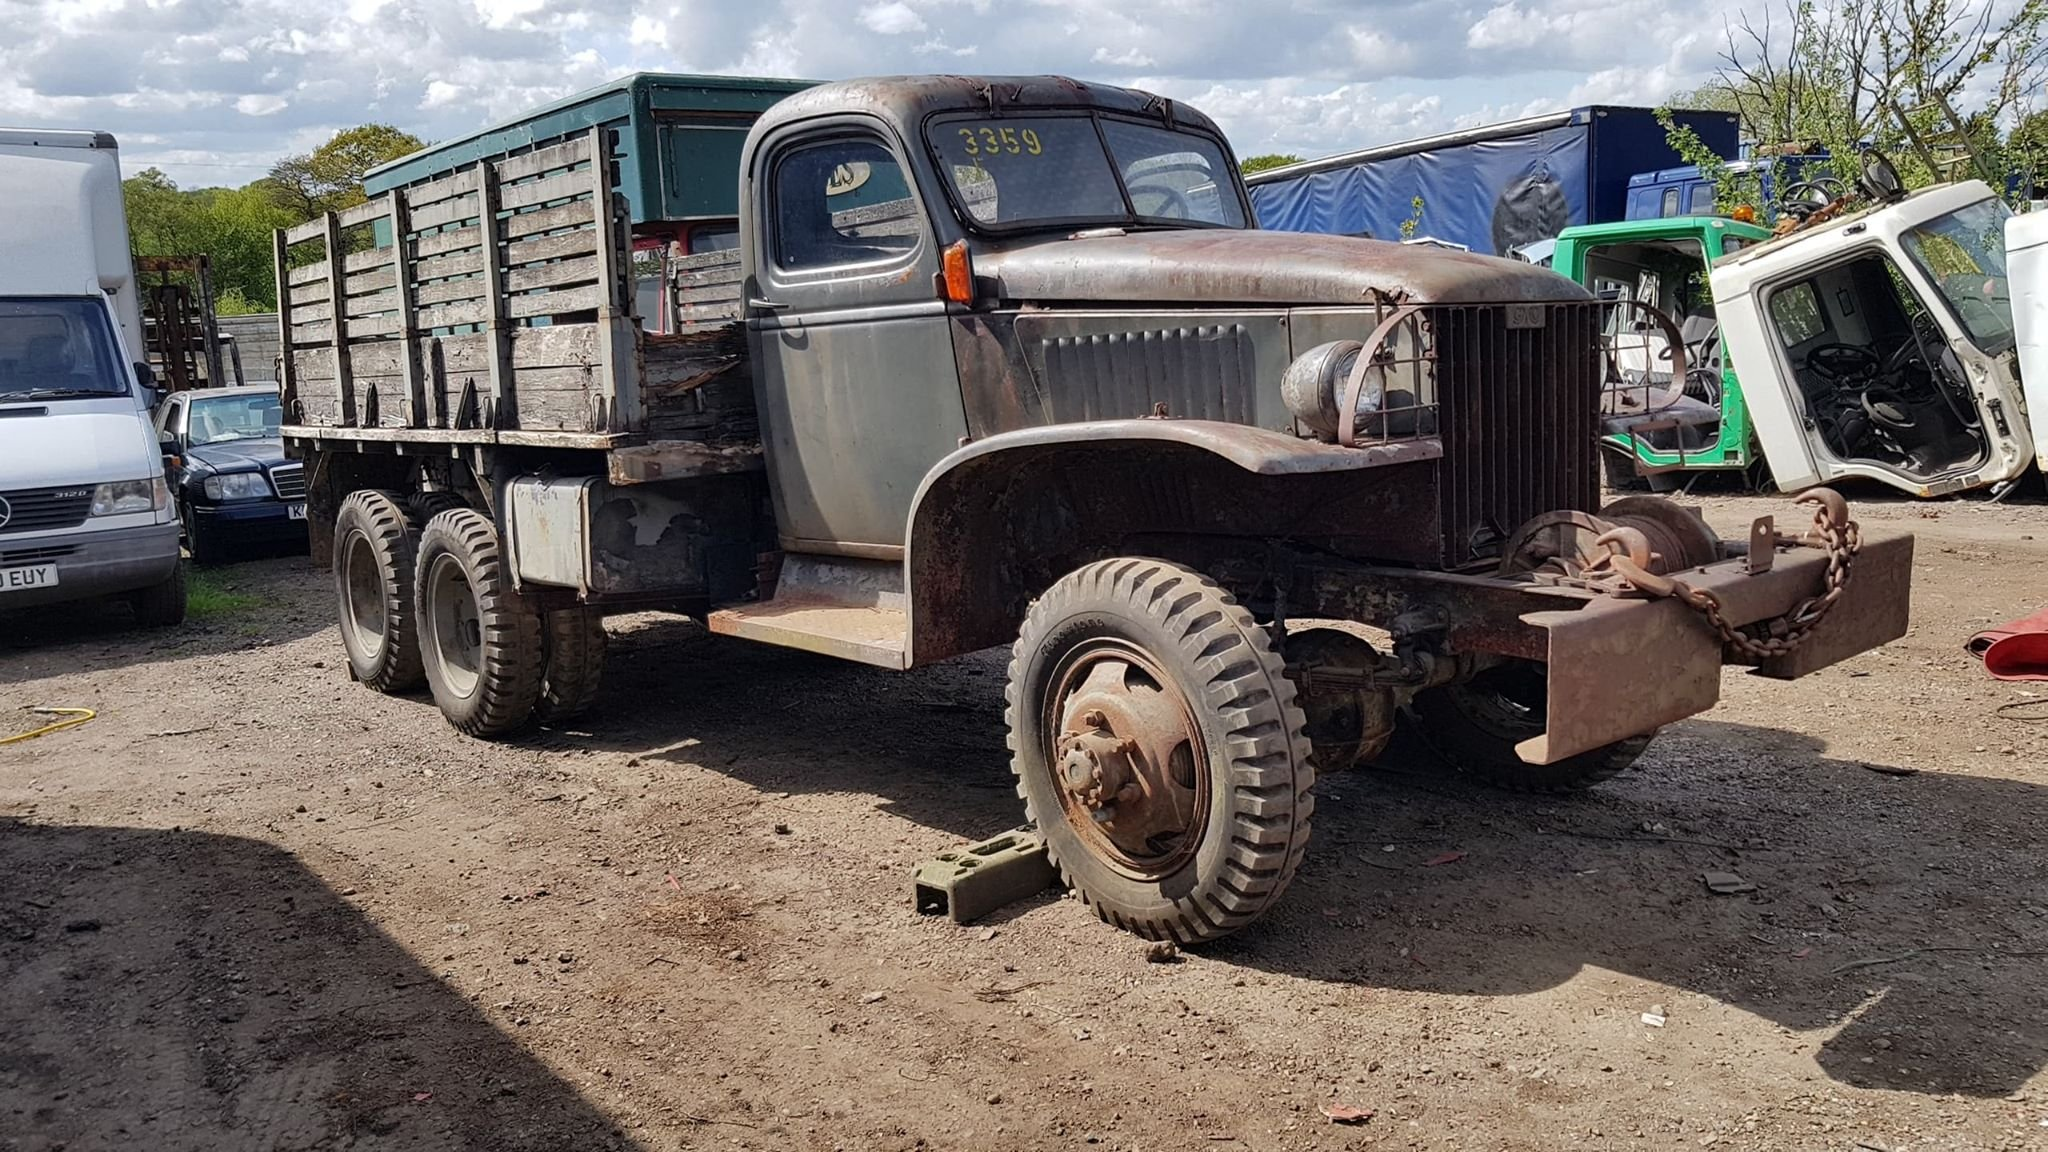 GMC CCKW 1944 hardcab winch truck  For Sale (picture 1 of 3)